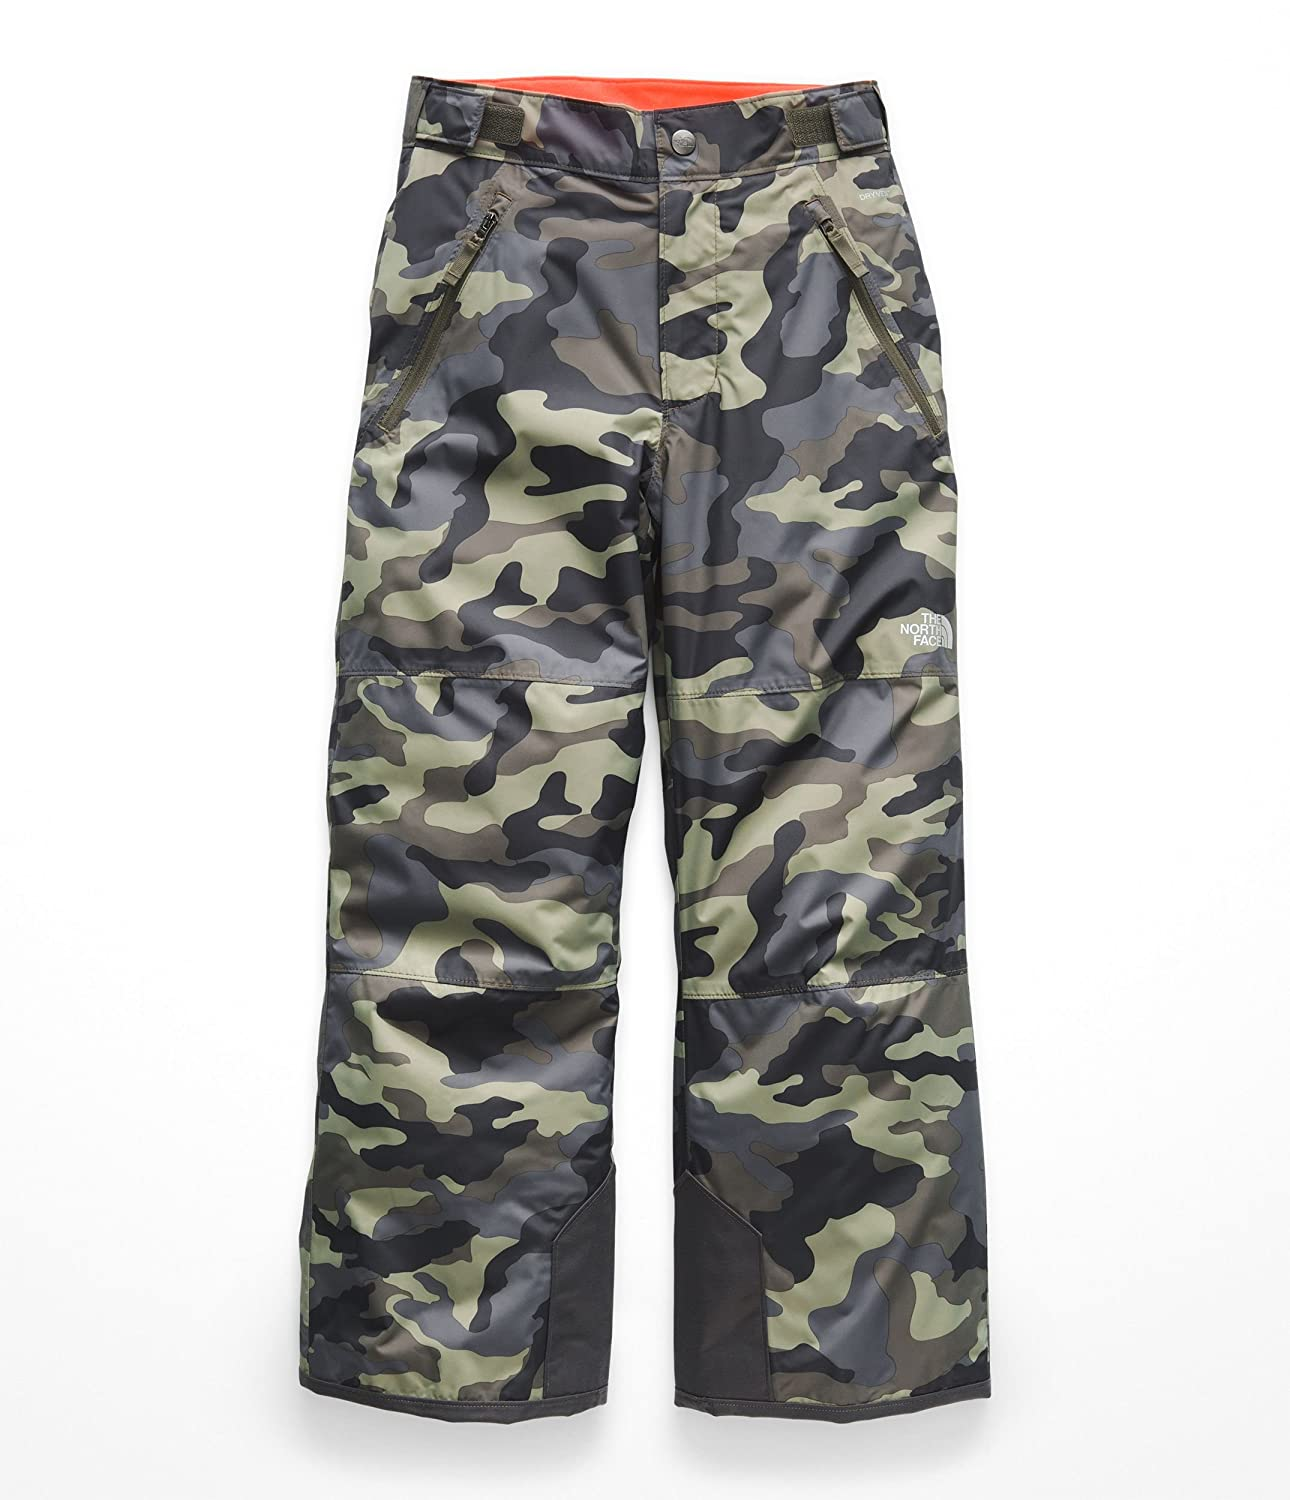 47a9f91b1 Amazon.com: The North Face Kids Boy's Freedom Insulated Pants (Little  Kids/Big Kids): Clothing